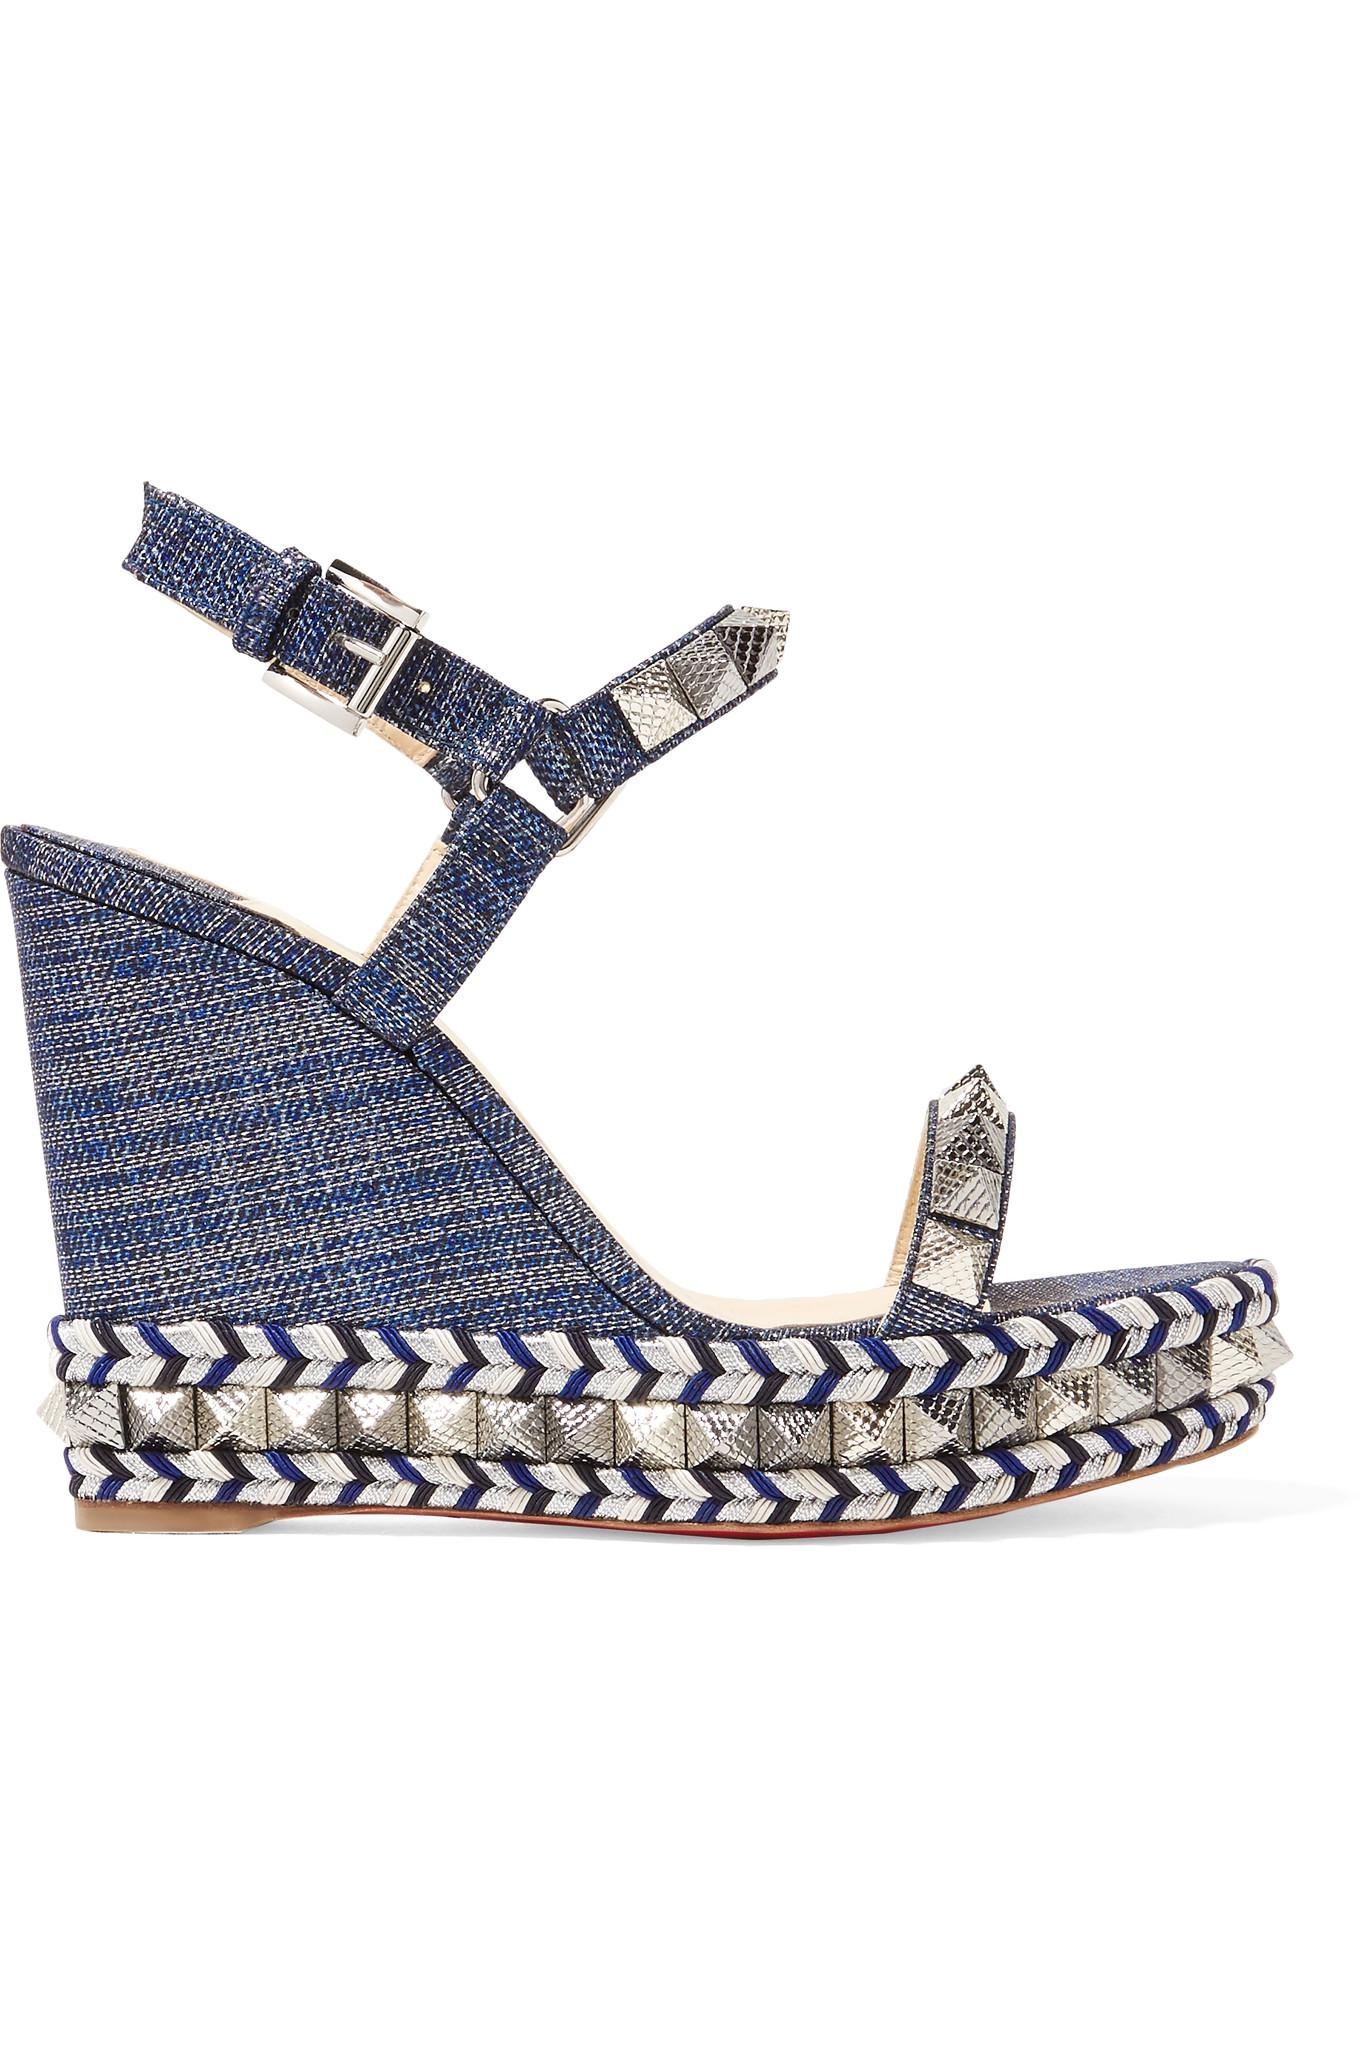 64bb2ff82a7c Christian Louboutin Pyraclou 110 Spiked Lamé Wedge Sandals in Blue ...